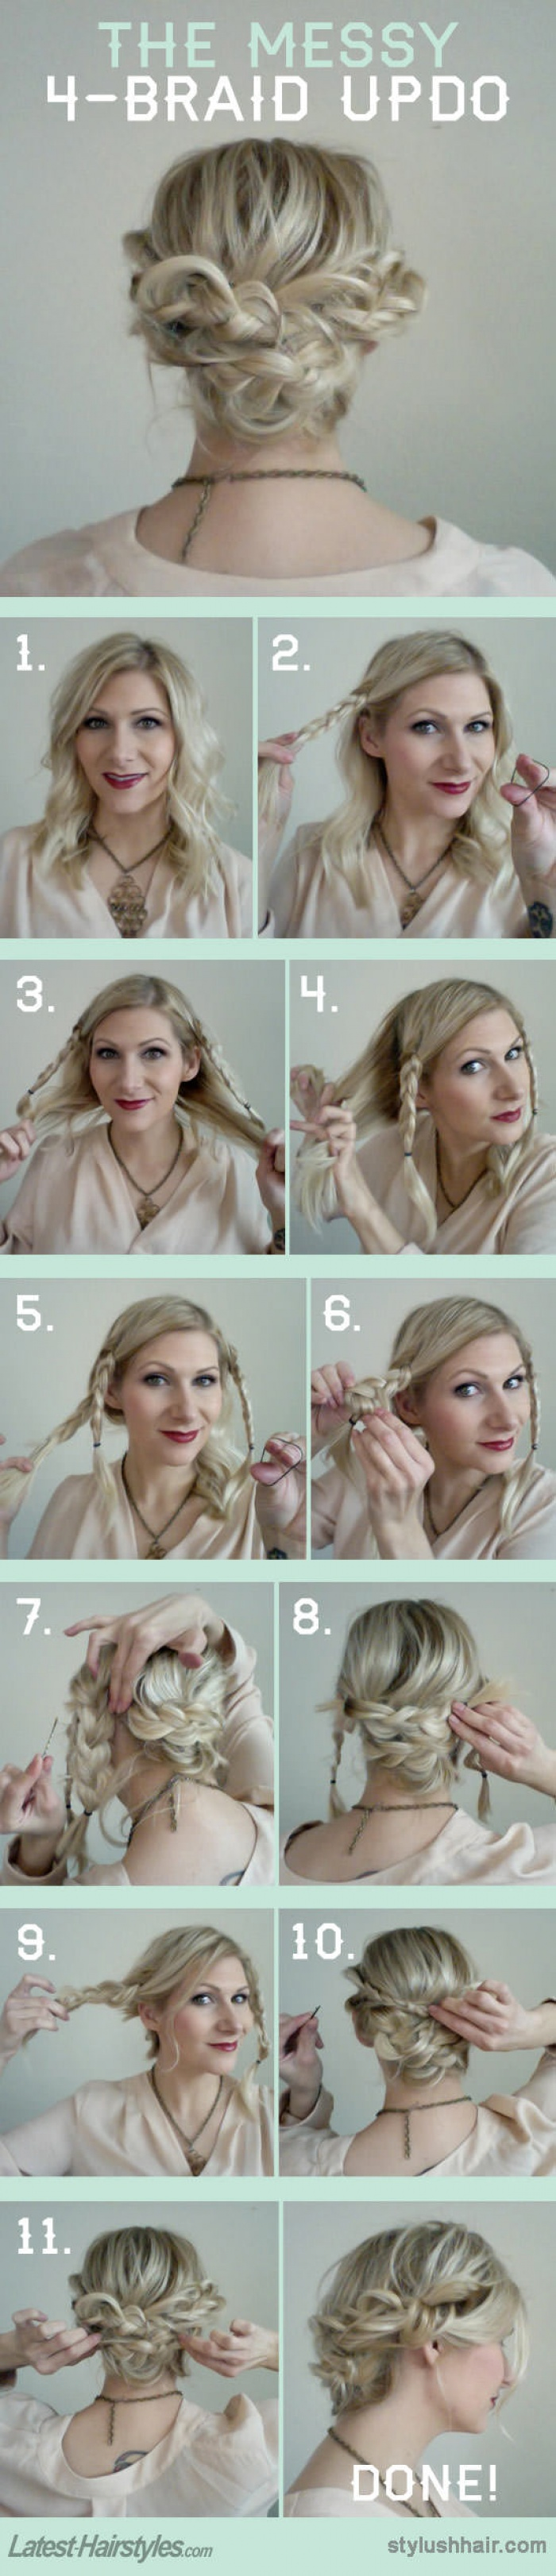 Messy Braided Updo Hairstyle Tutorial